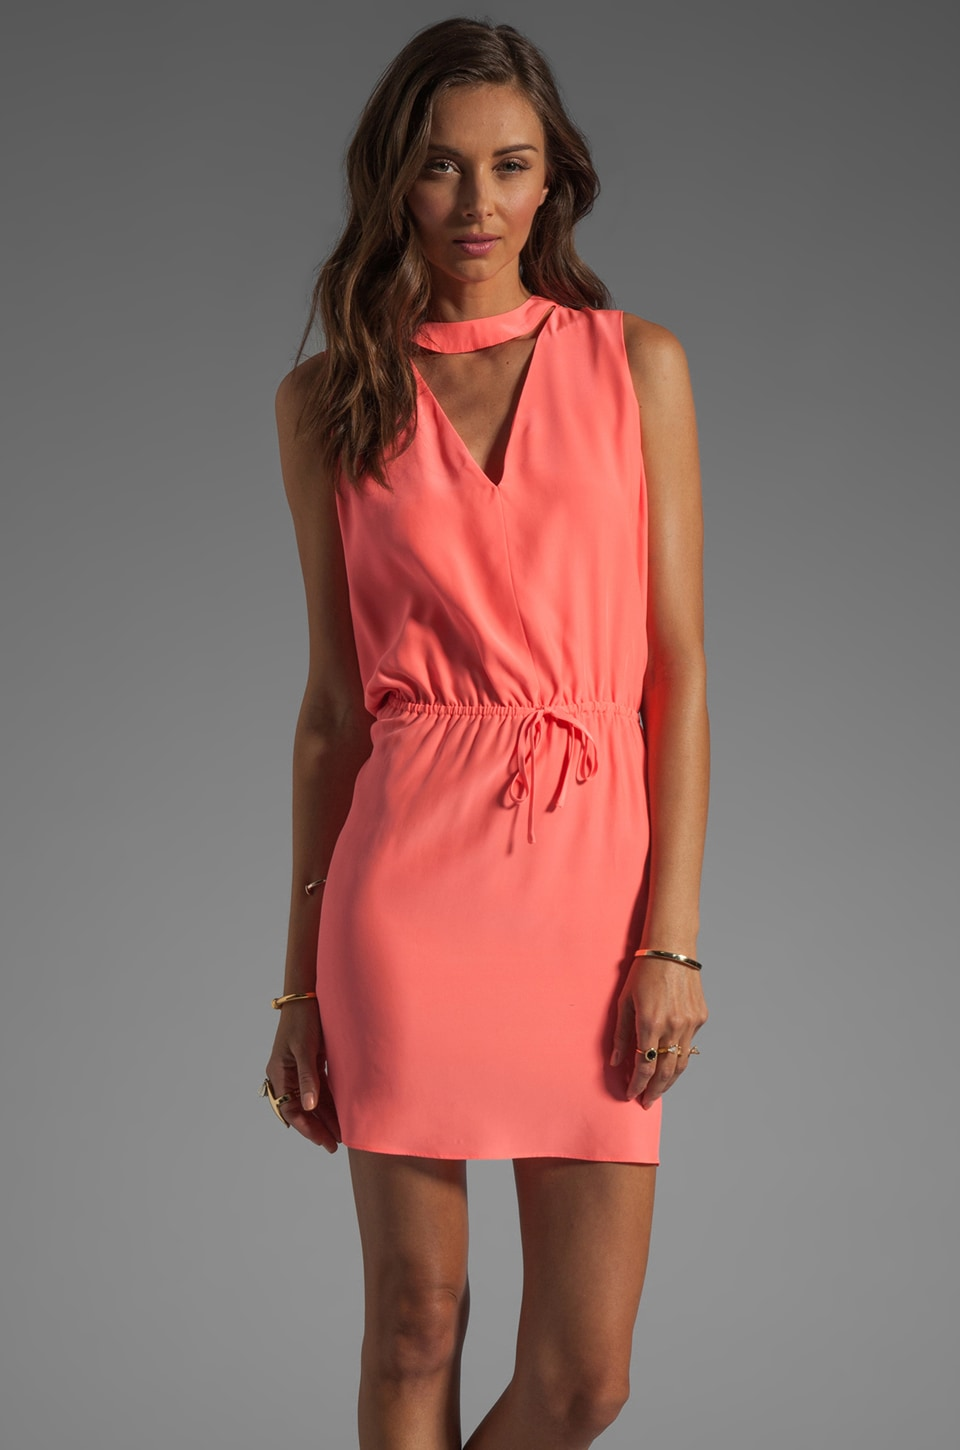 Parker Aubrey Dress in Grapefruit